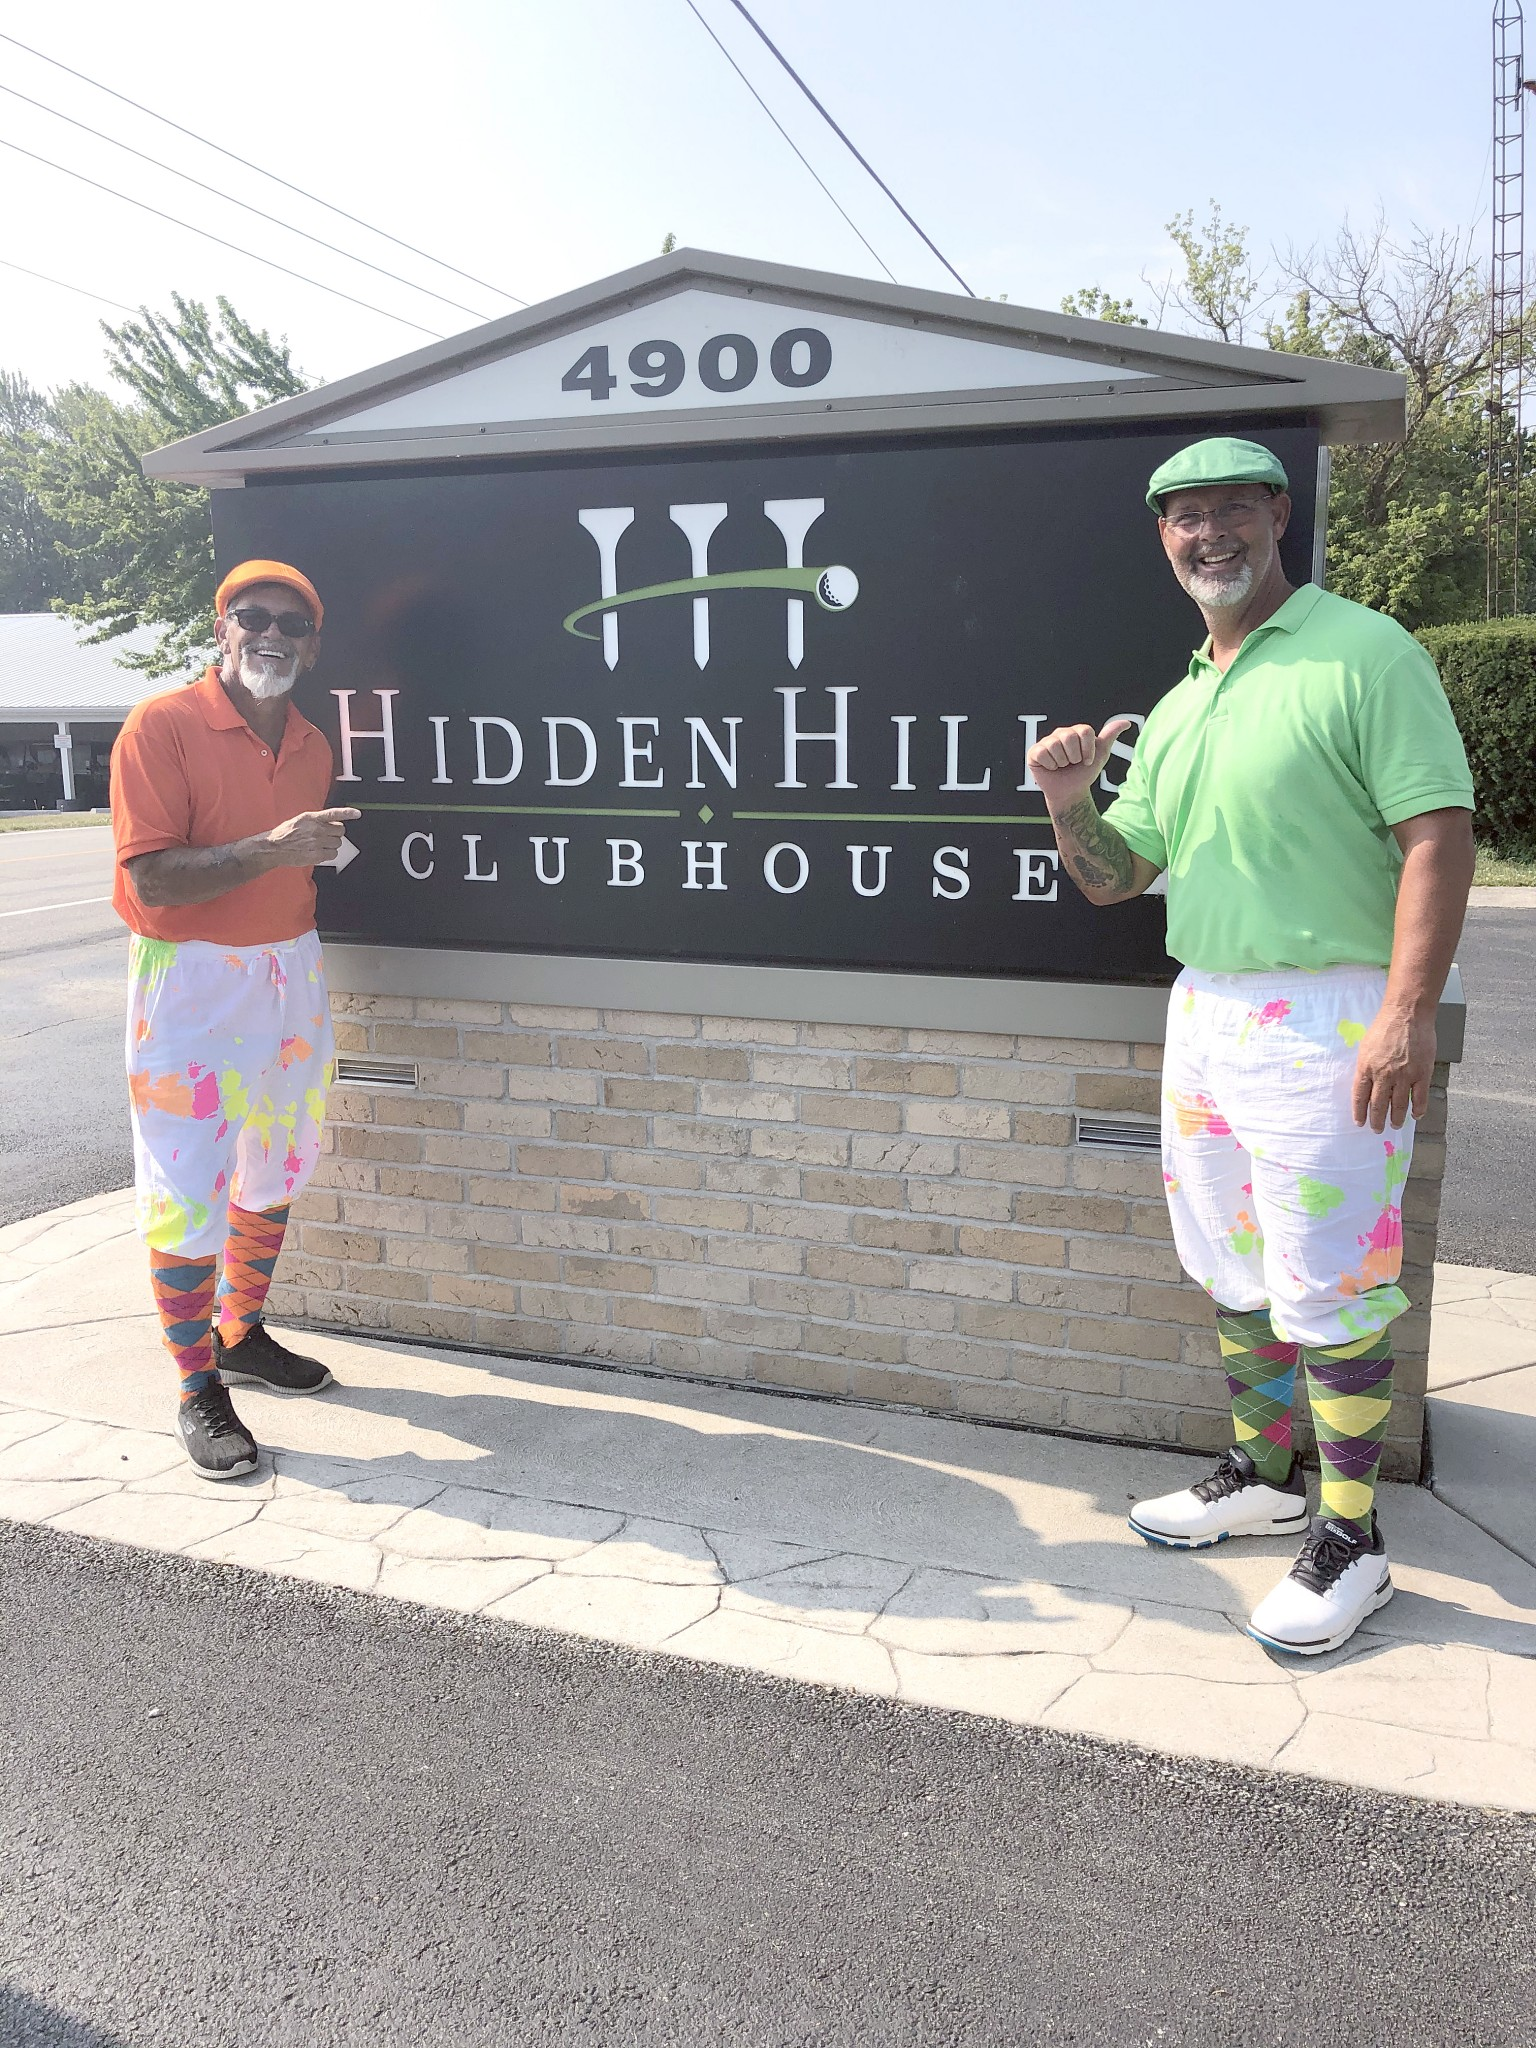 Bernie Anderson, a 27-year military veteran, at right after getting his first hole in one. At left is golf buddy Trevor Hyter (Photo courtesy Matt Hecht/Hidden Hills Golf Club)